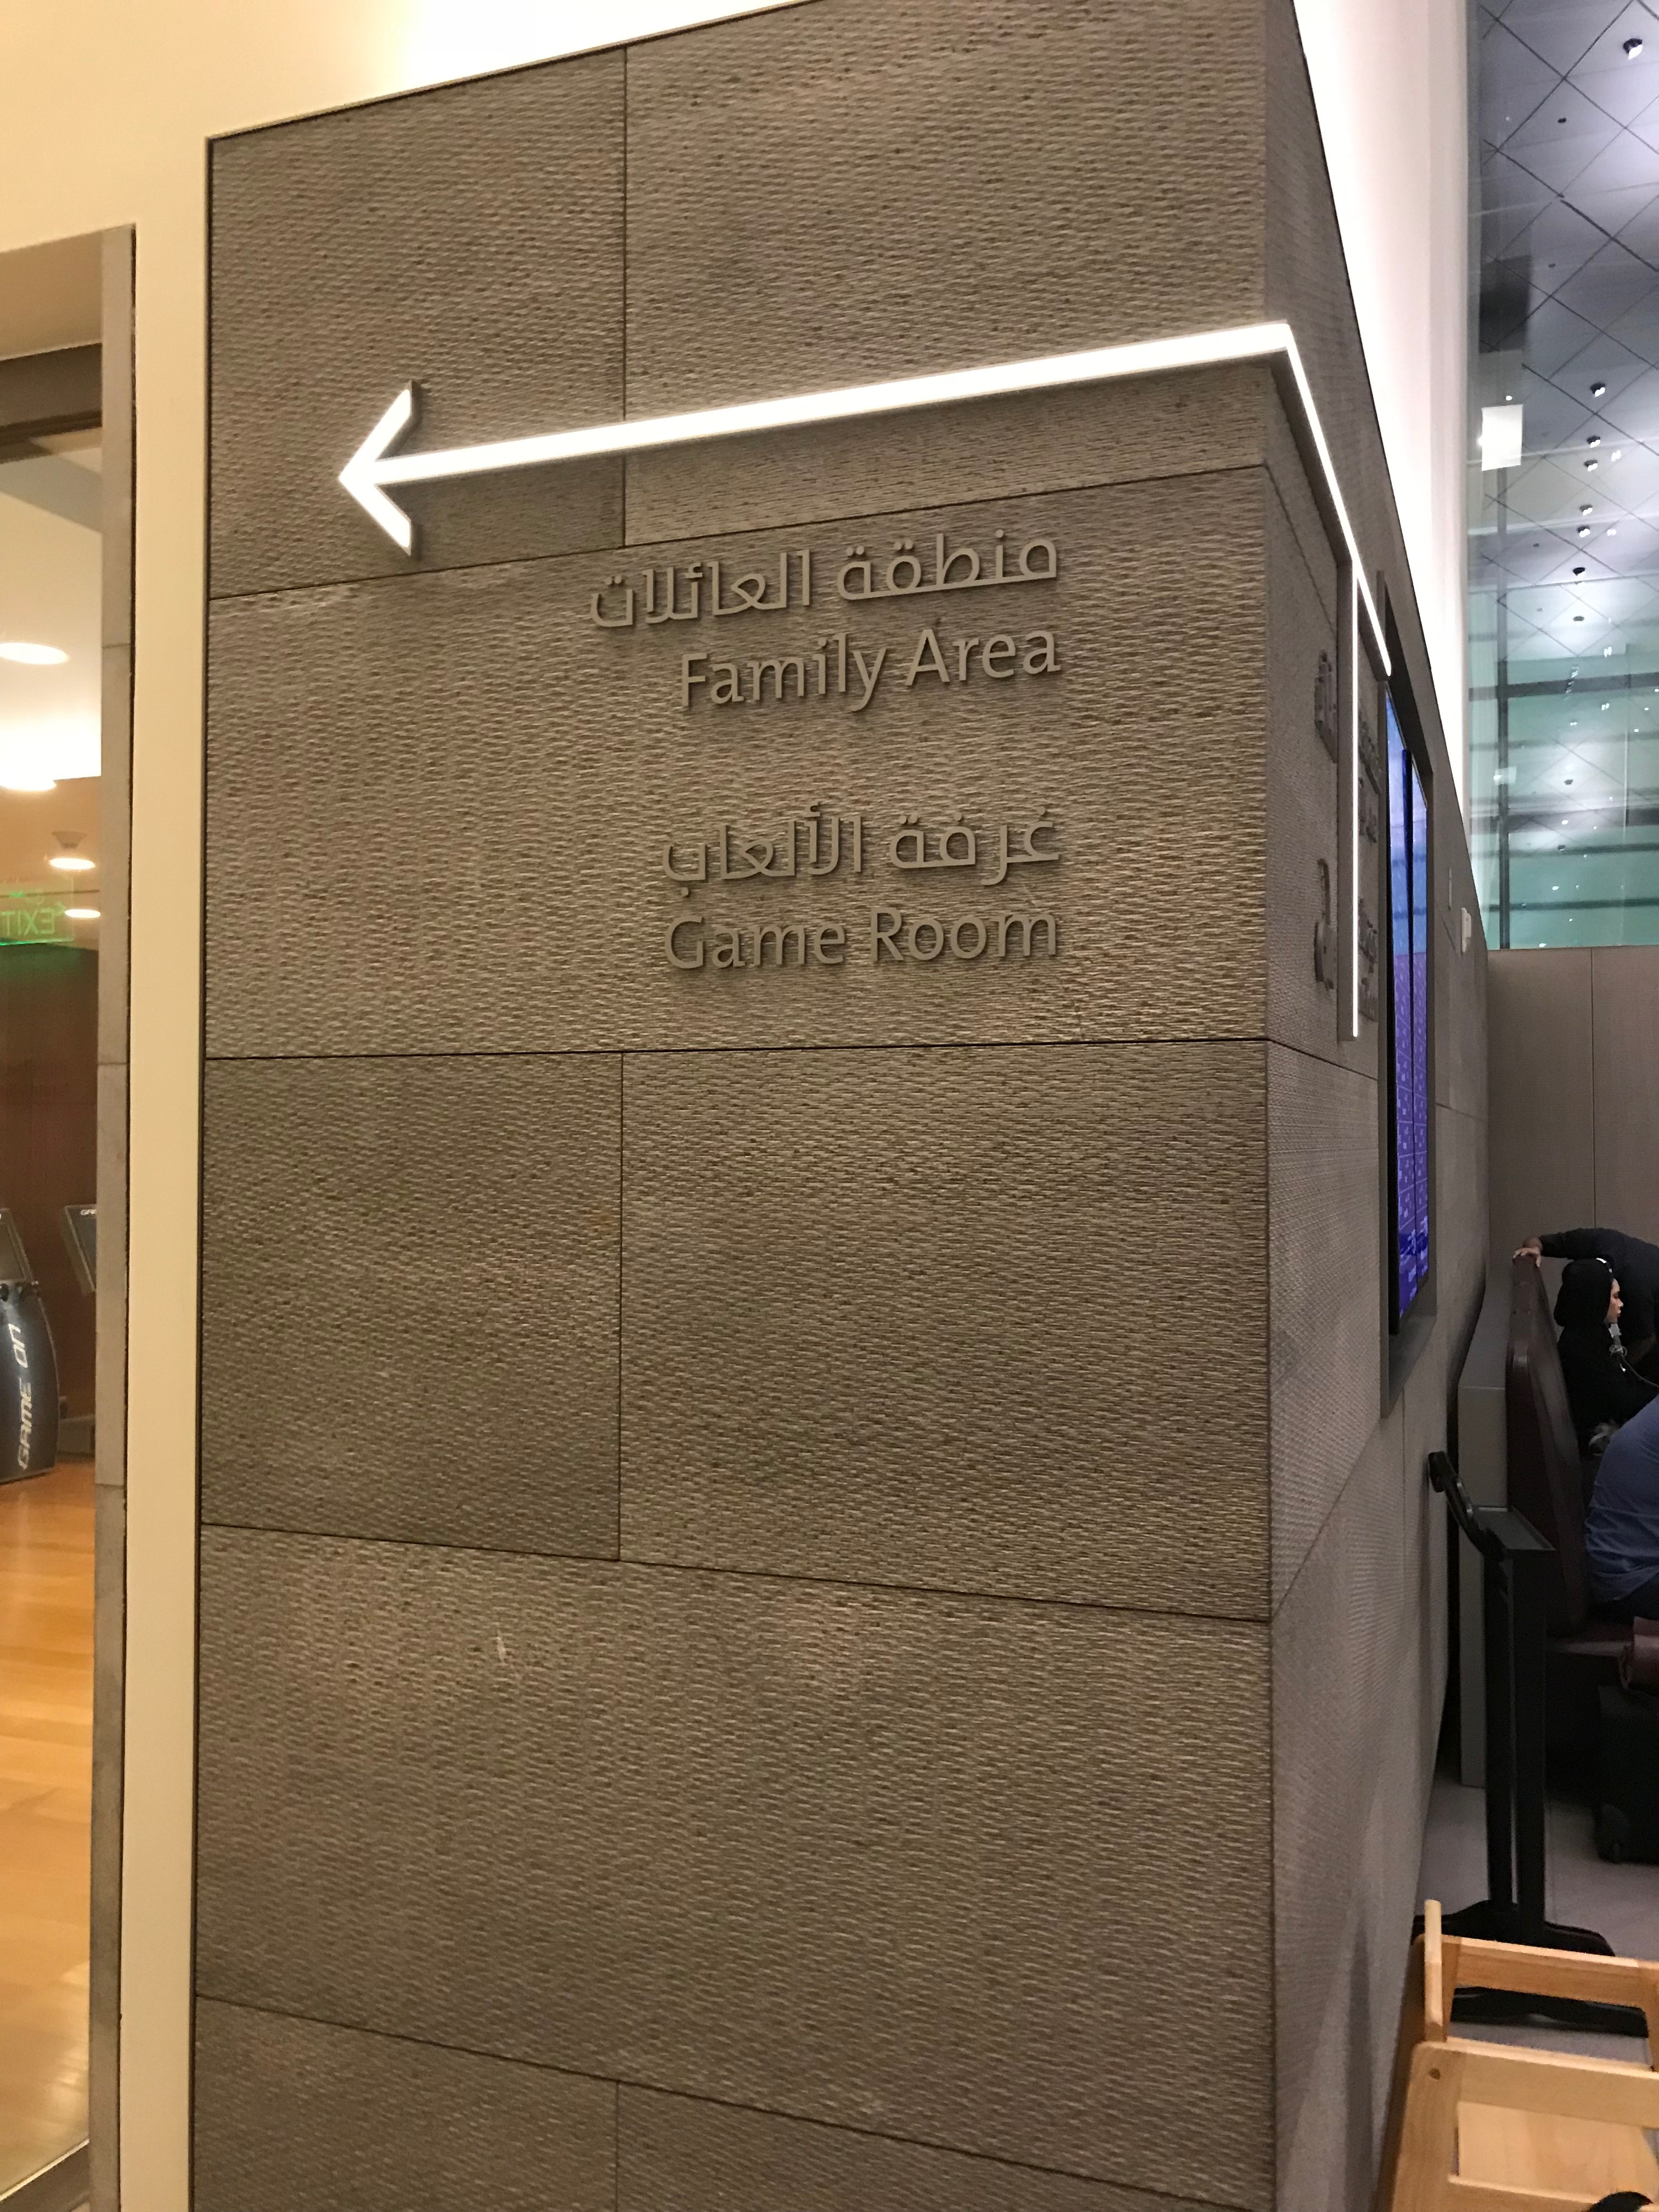 Sign to game room and family area in the Al Mourjan lounge